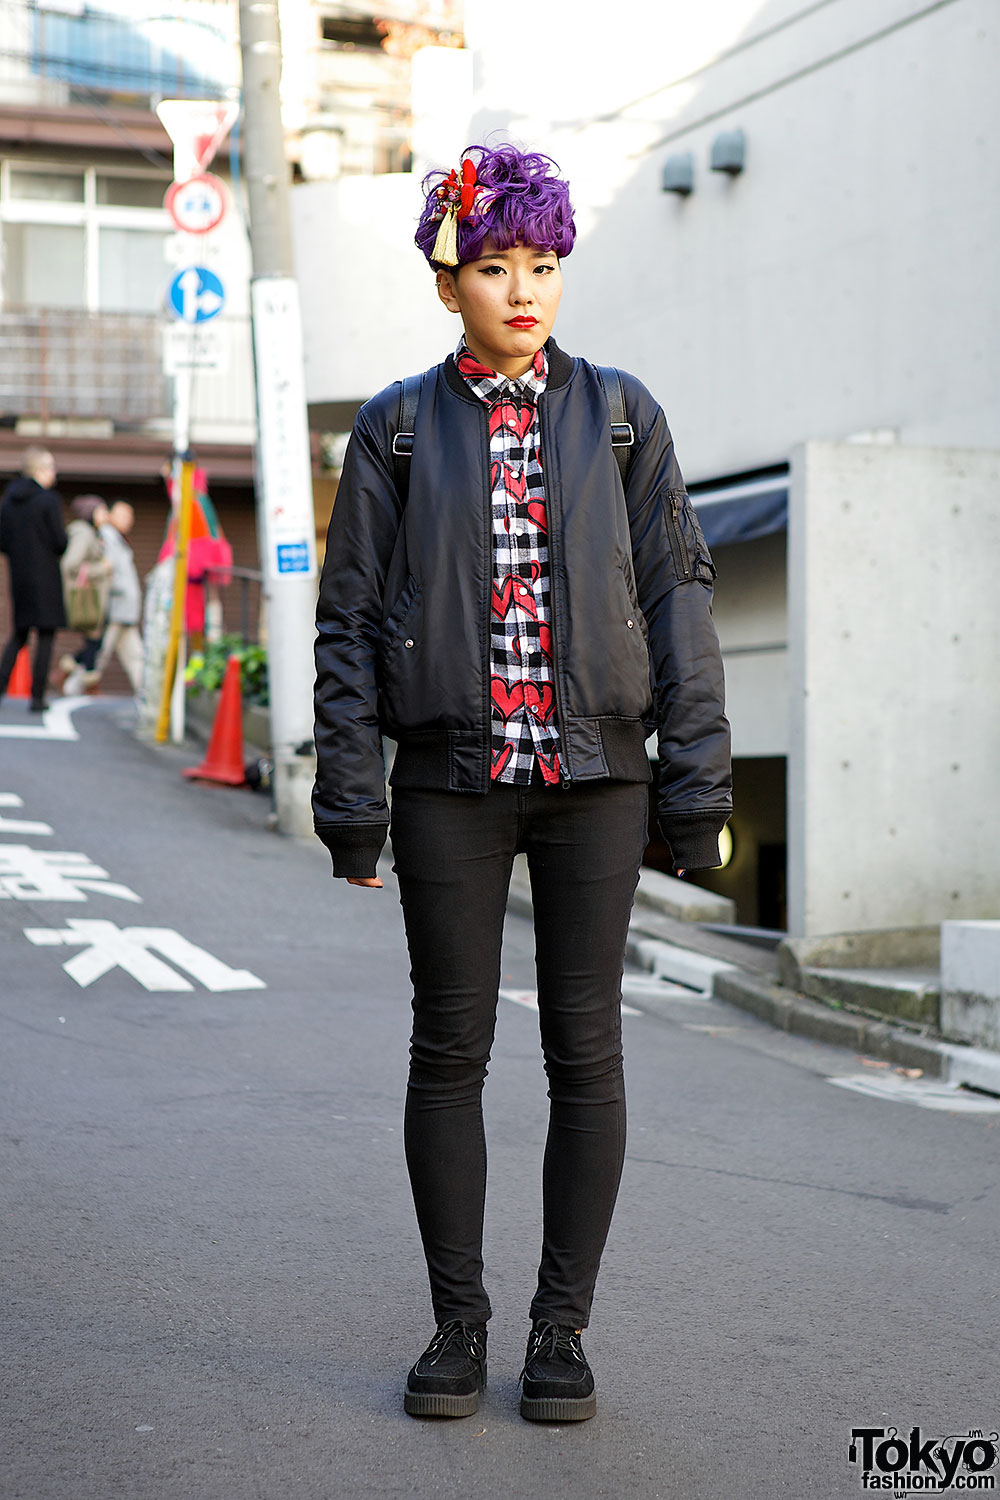 Purple Hair, Joyrich Simpsons Bomber Jacket & Wings Backpack in Harajuku